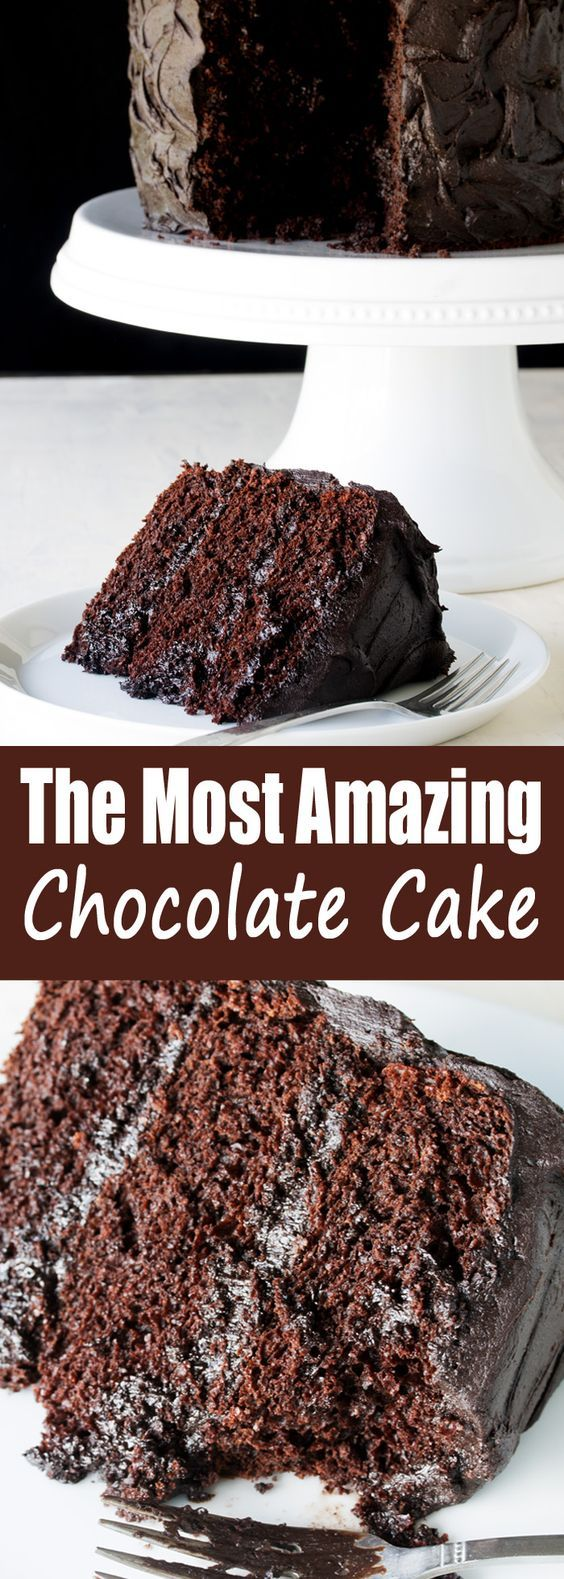 this recipe, Denise. It's a keeper for me. I can say that for me, it is just almost too much chocolate cake. I love that this cake is guara...